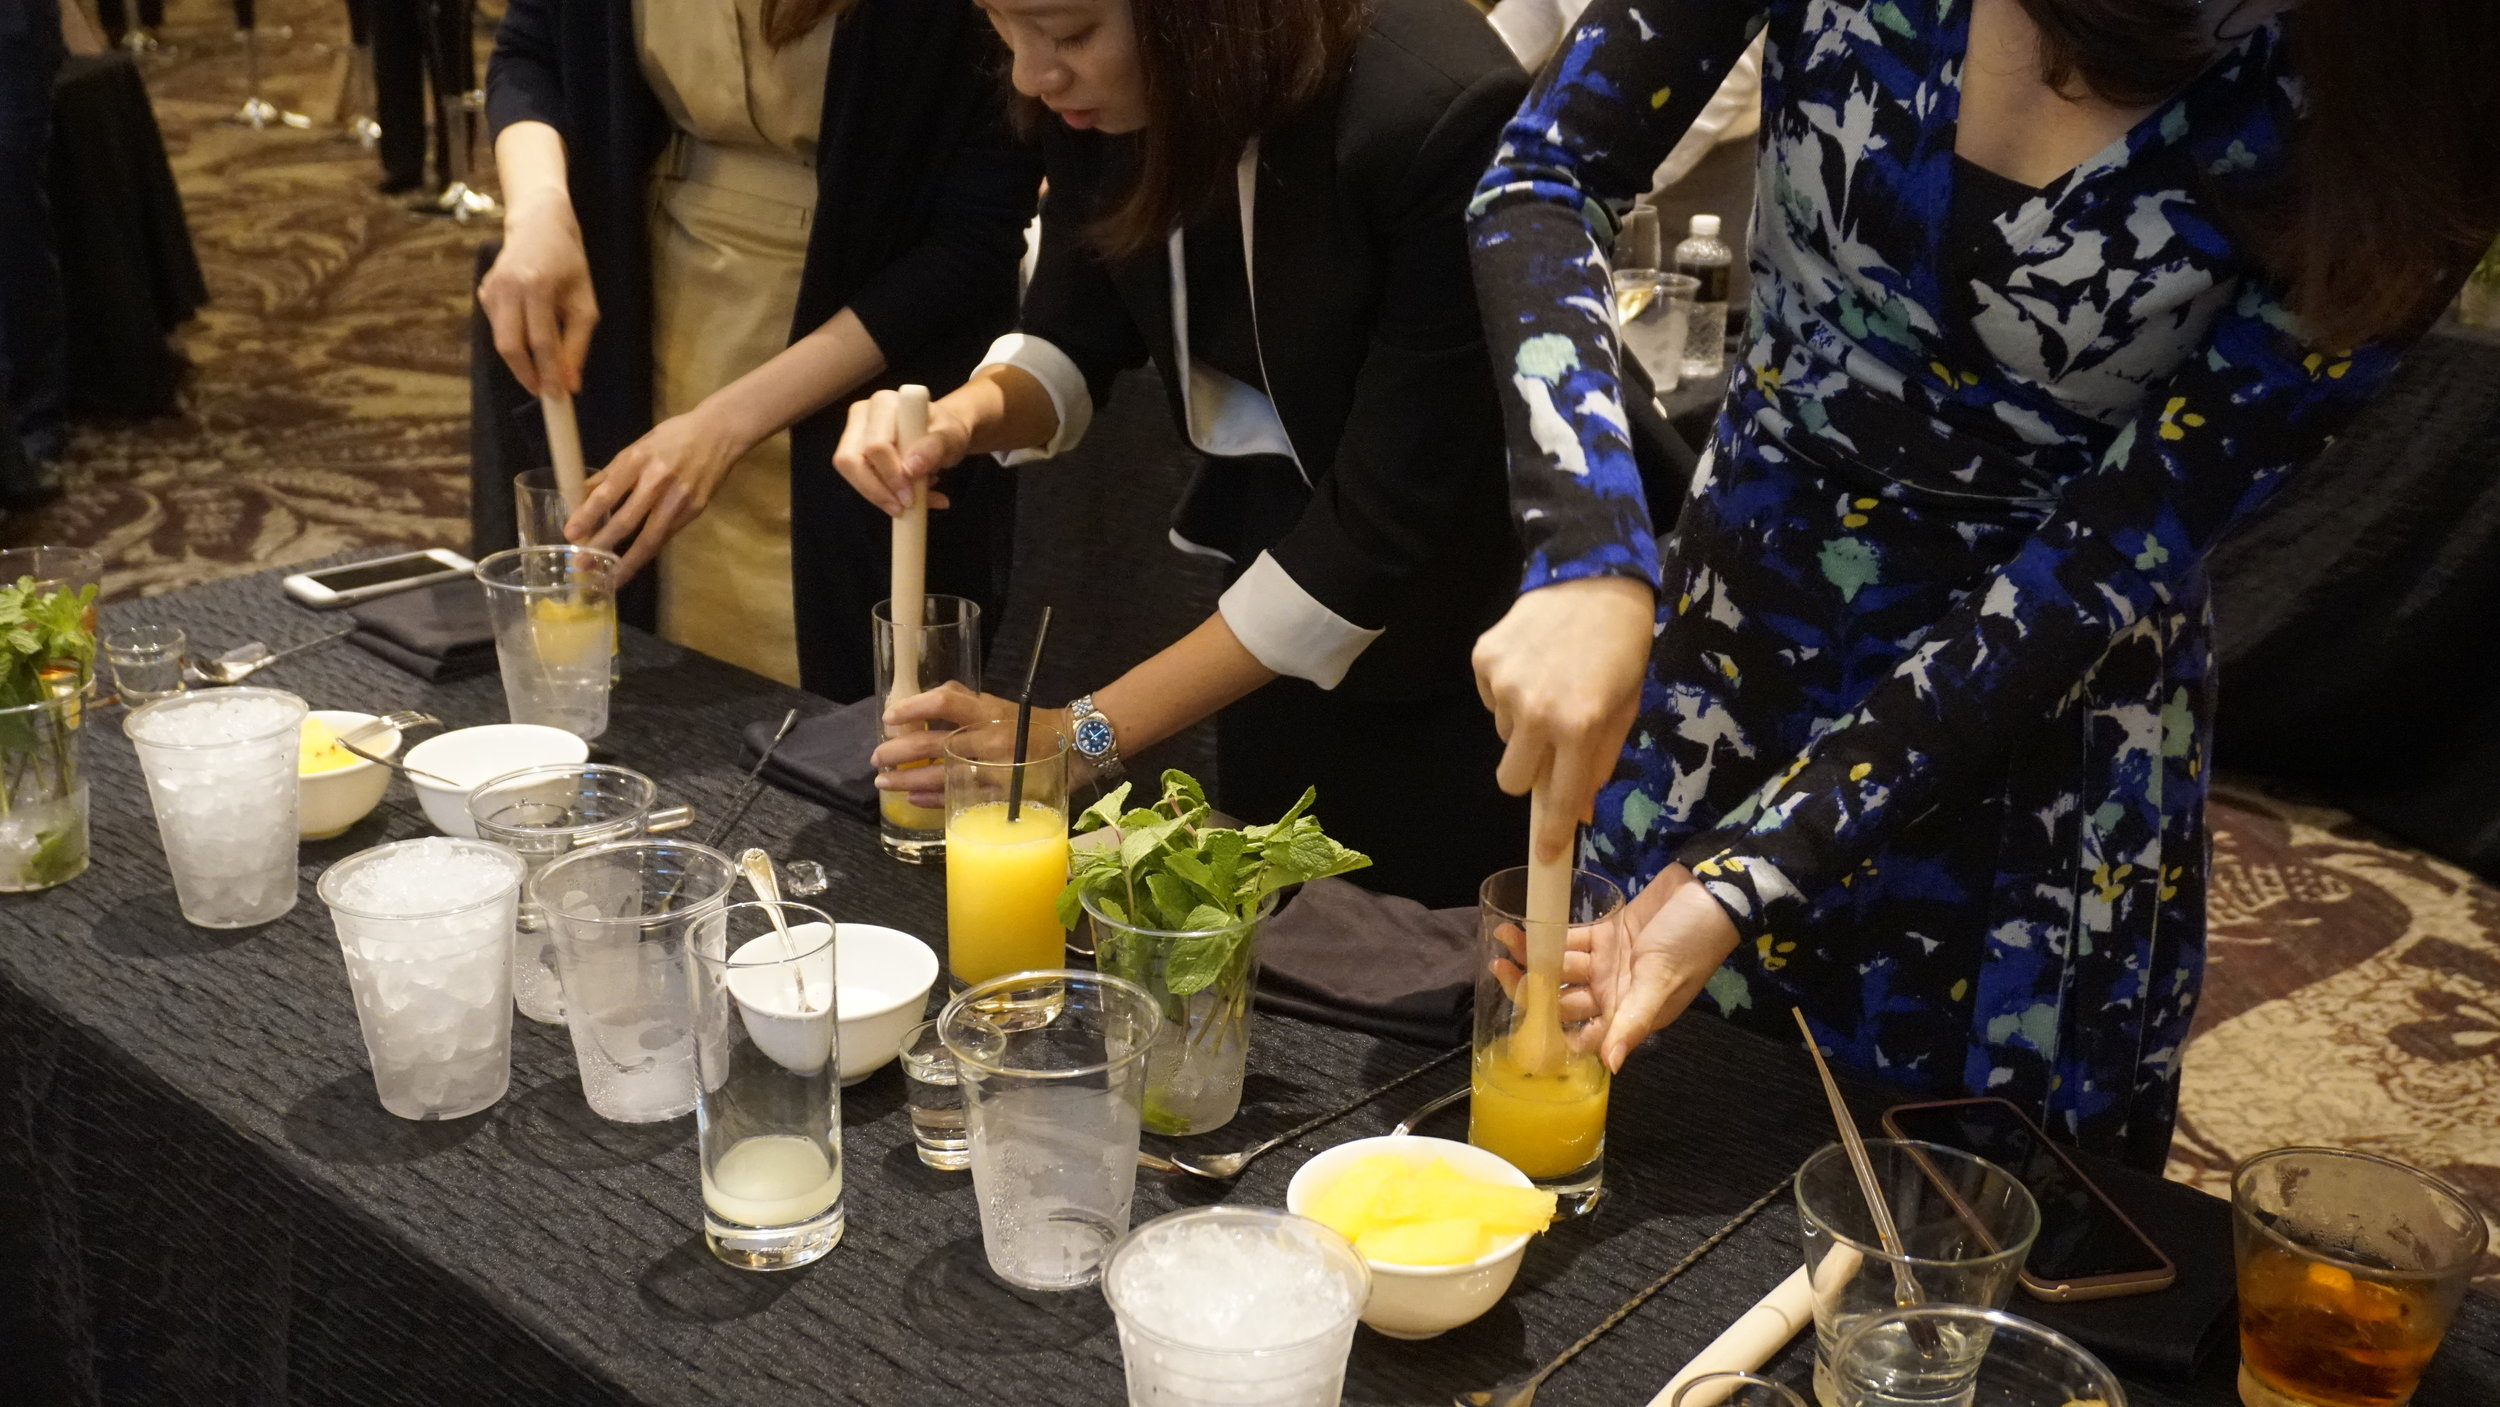 StRegis_Scholar_Mixology_Workshop_0013.JPG